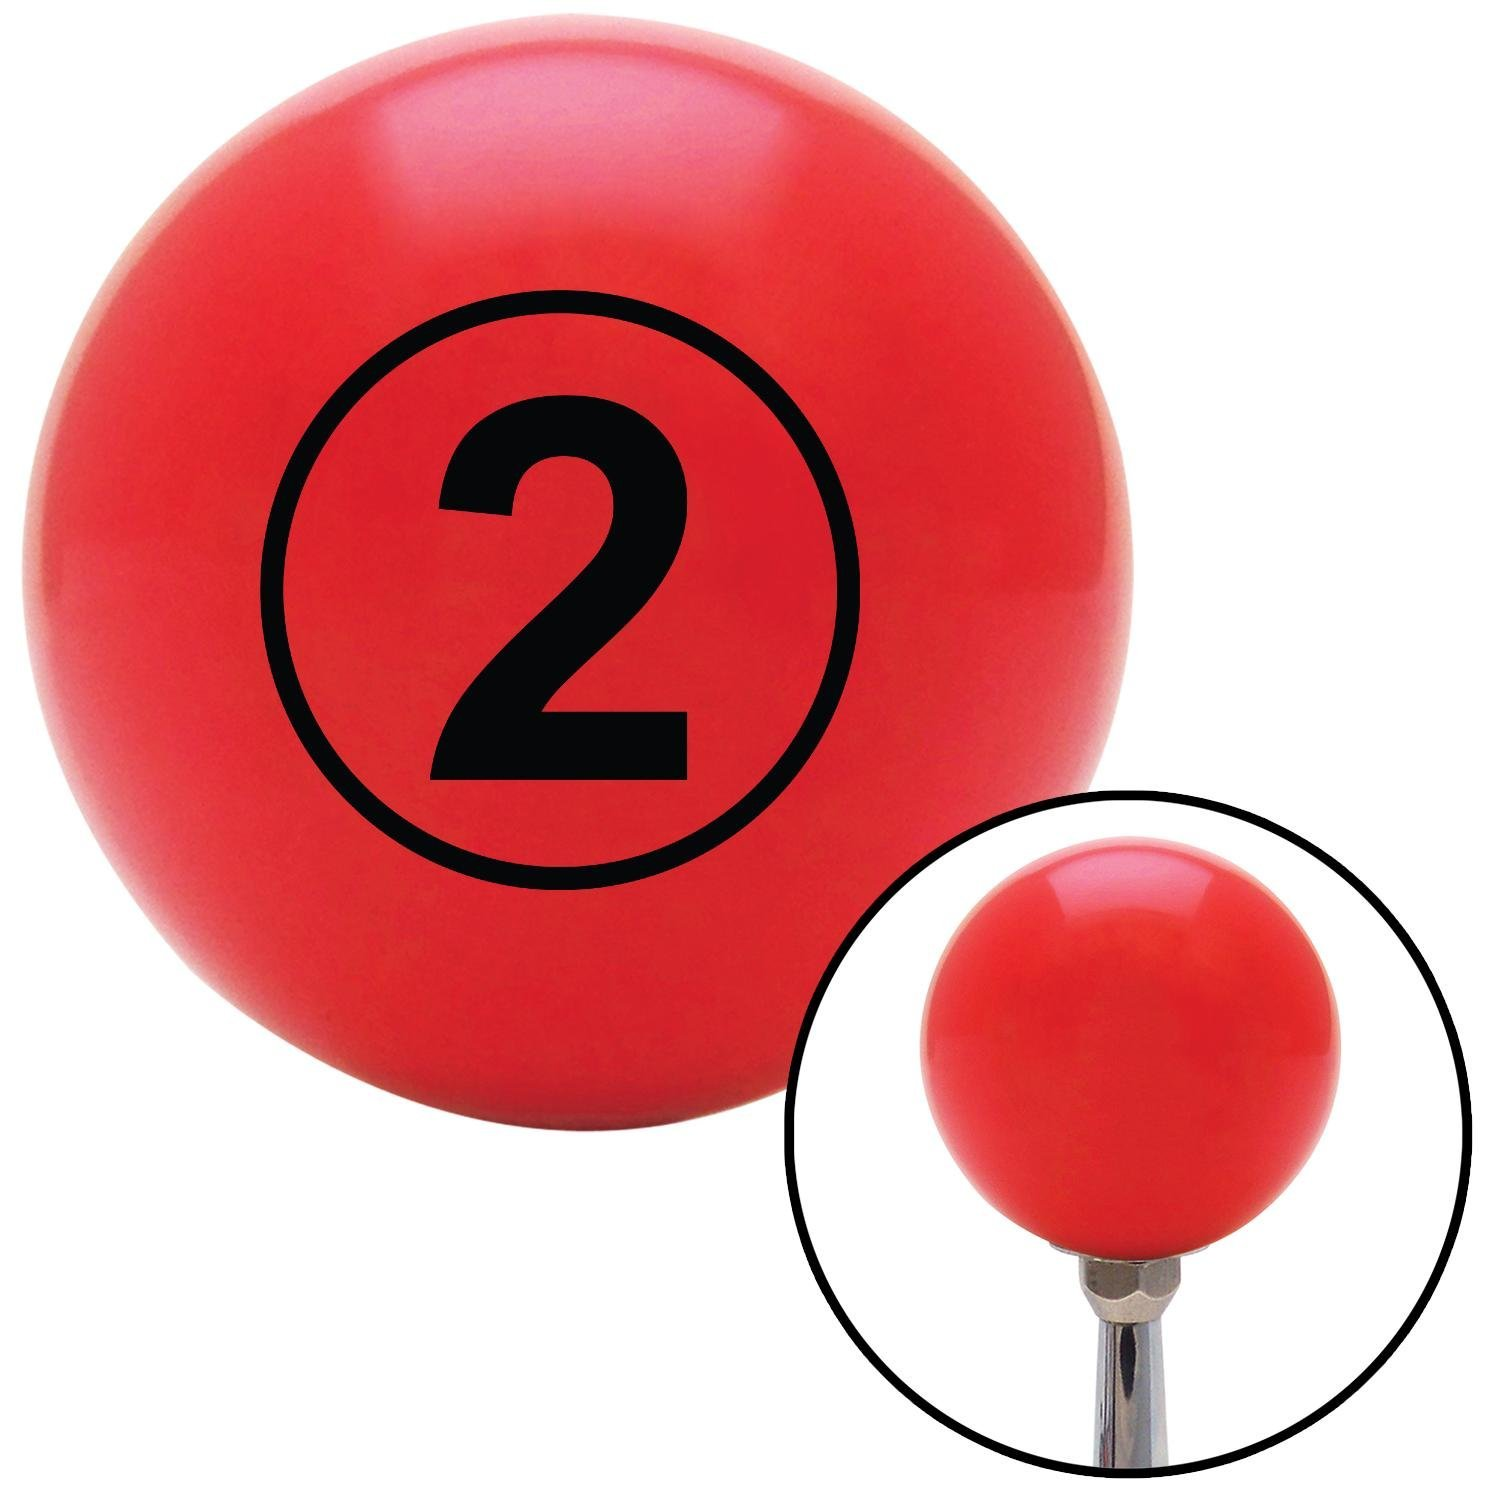 Black Ball 2 American Shifter 94485 Red Shift Knob with M16 x 1.5 Insert